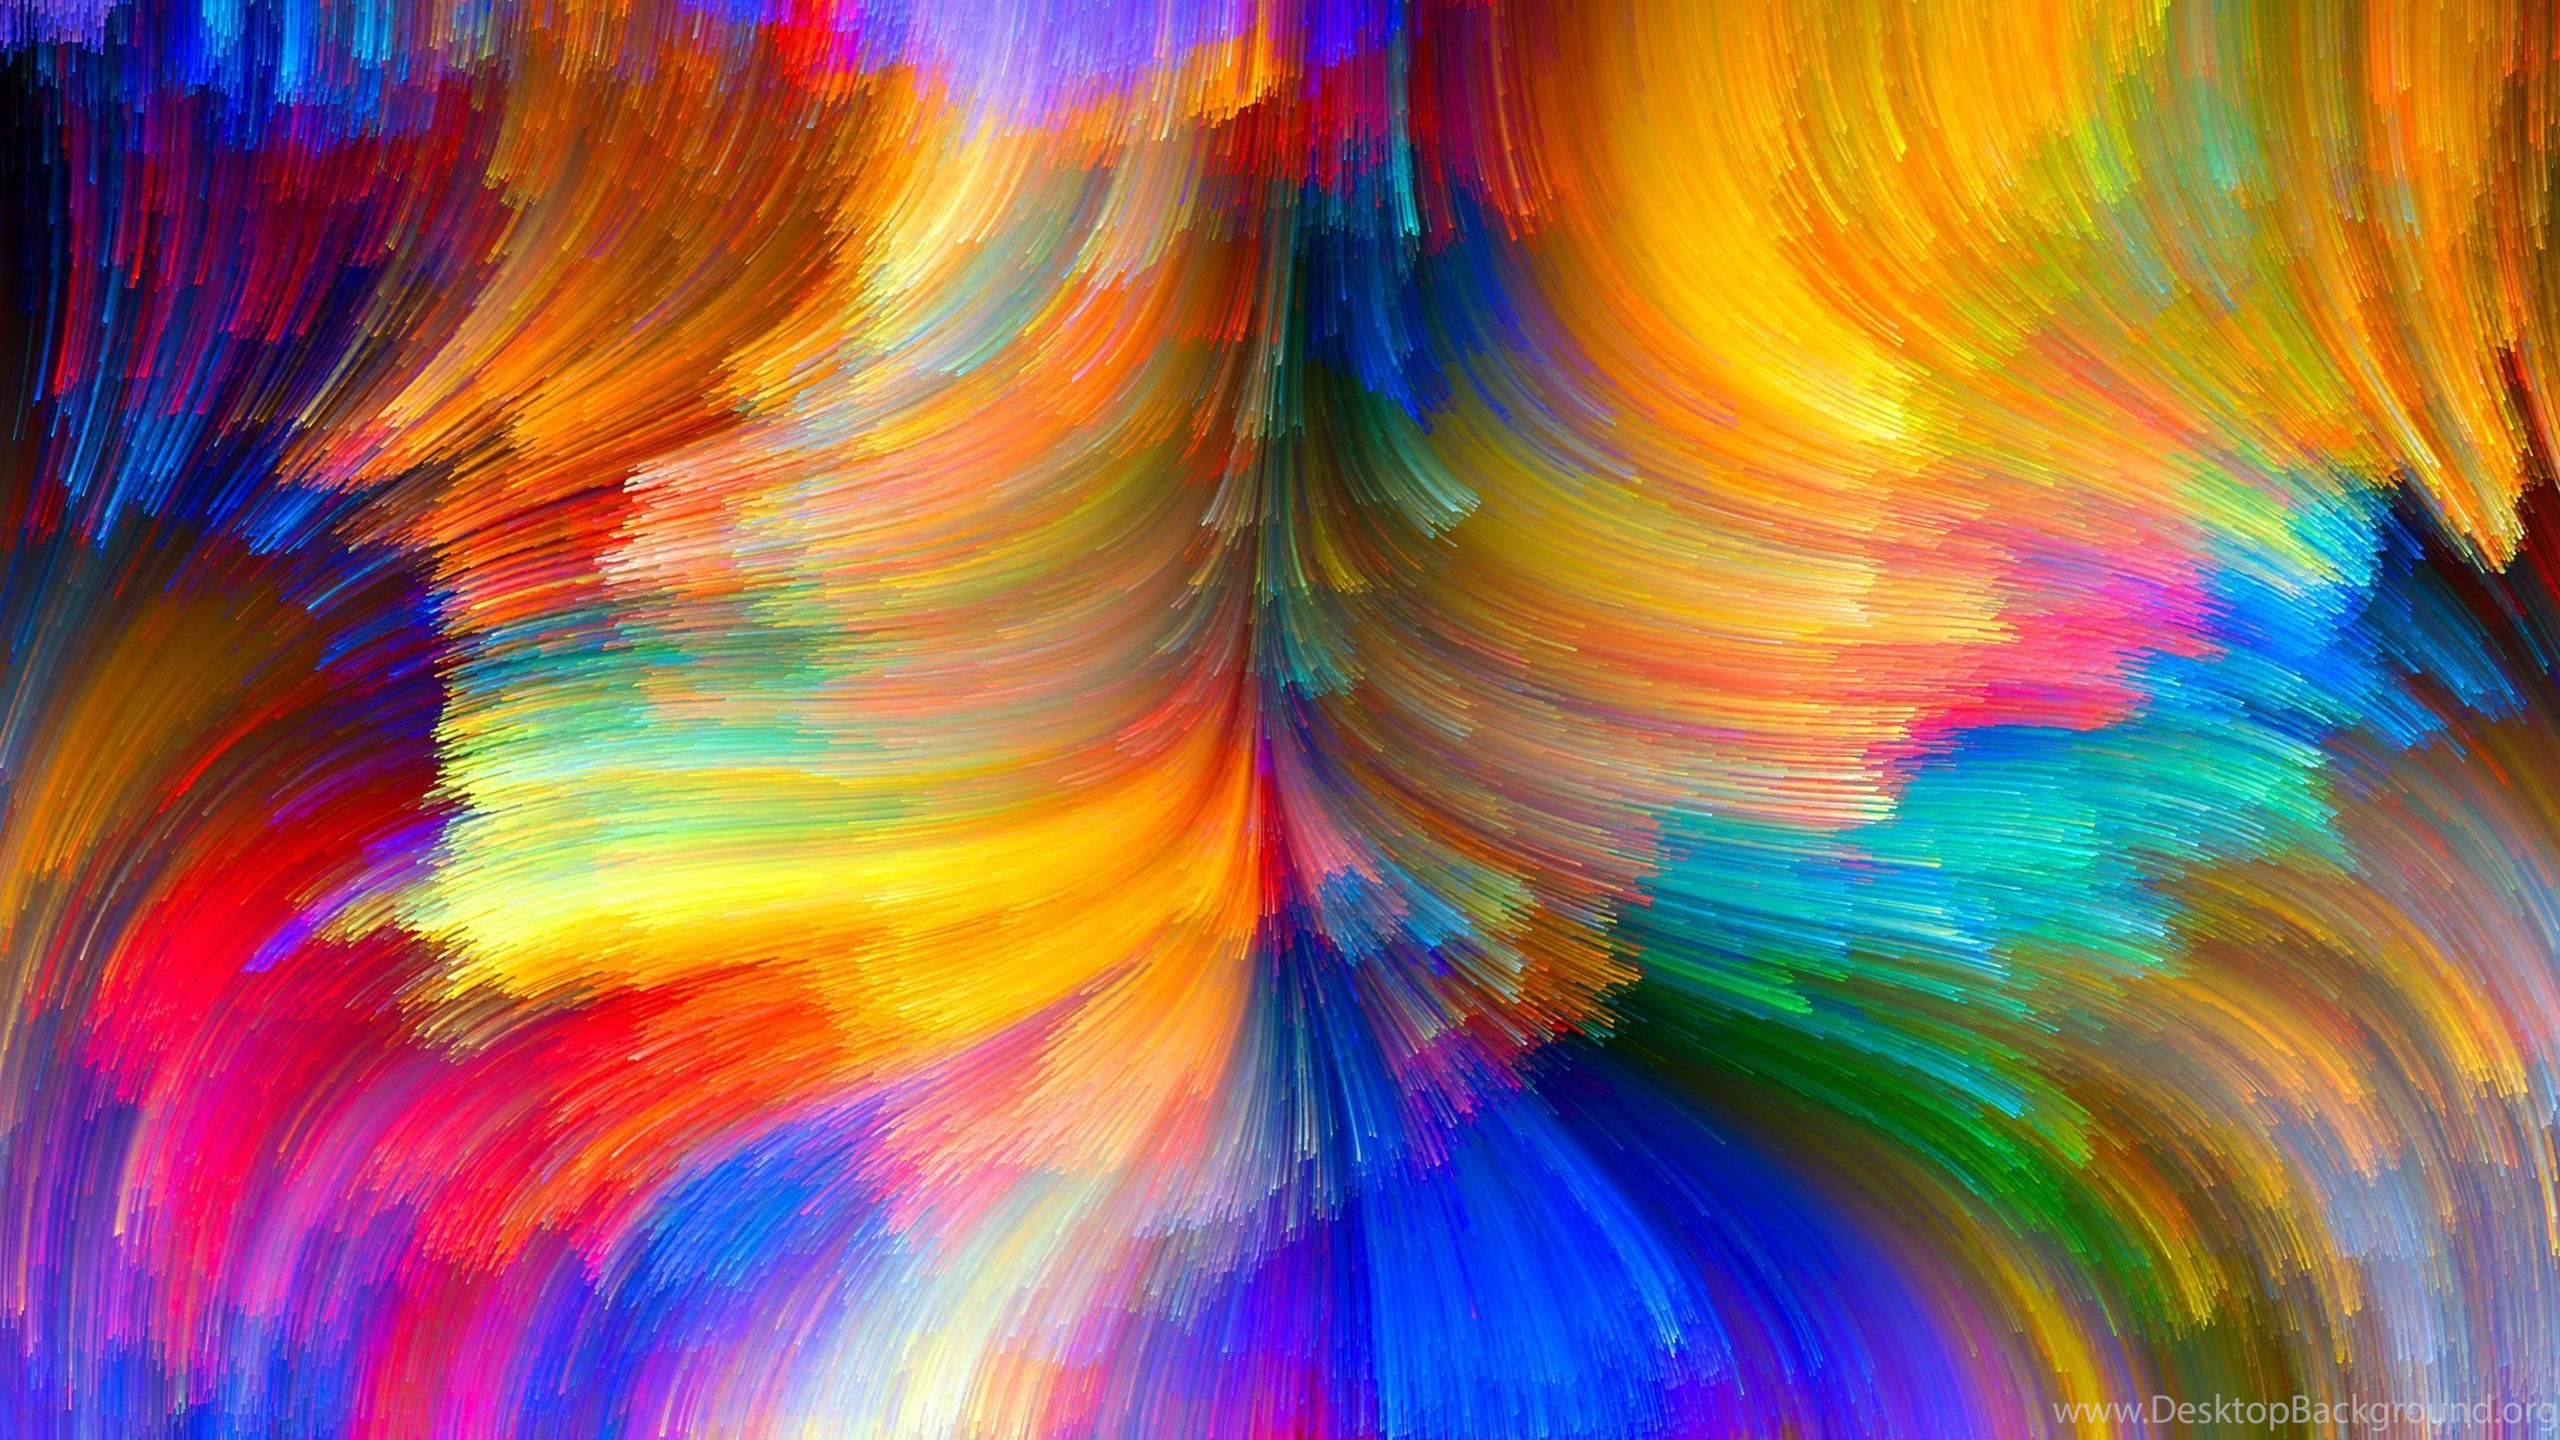 Abstract Bright Color High Resolution Wallpapers For Desktop Desktop Background